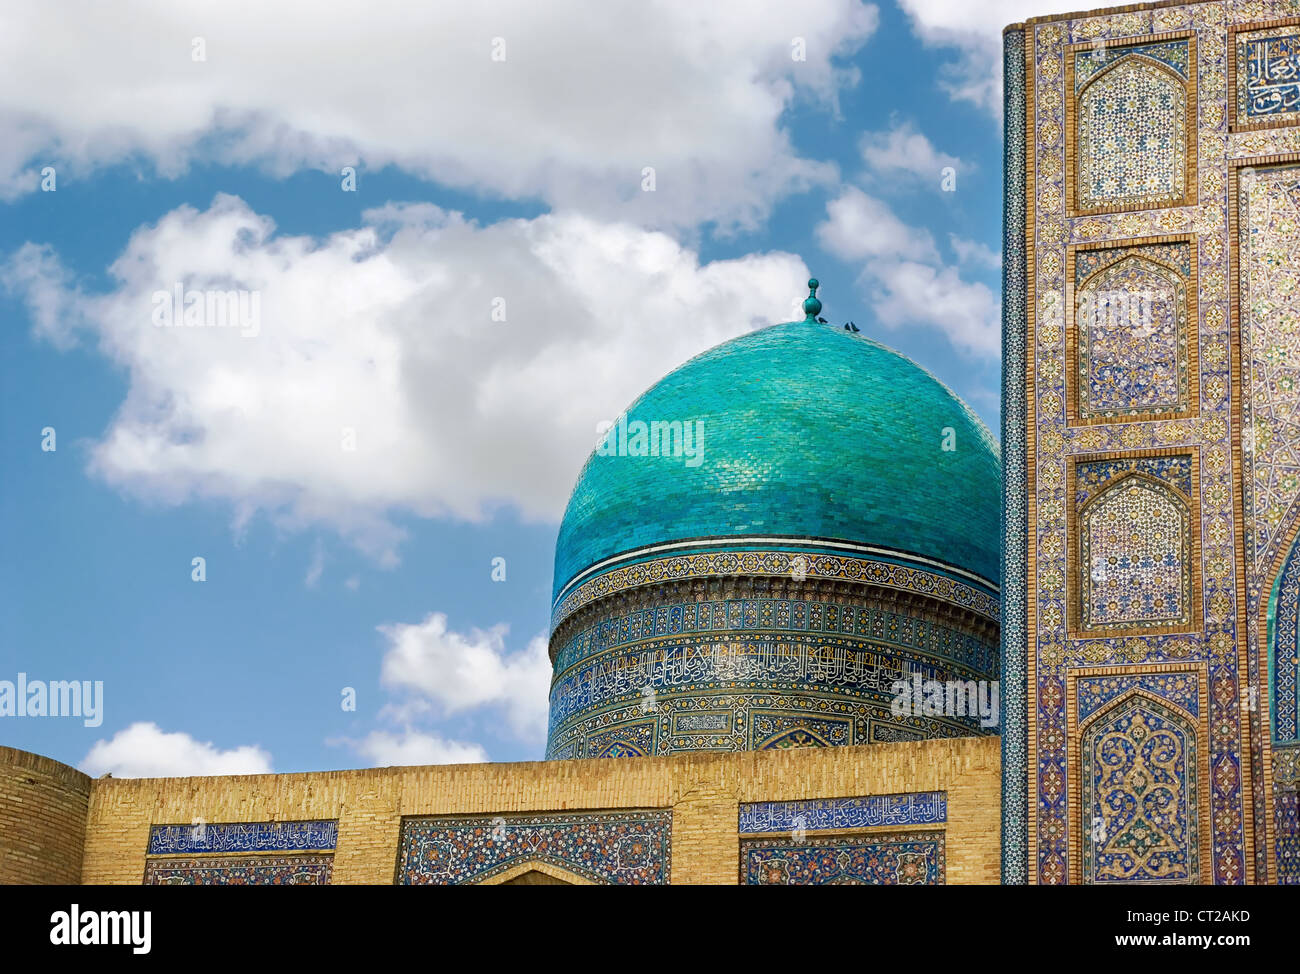 Detail of traditional Uzbekistan Architecture - Stock Image